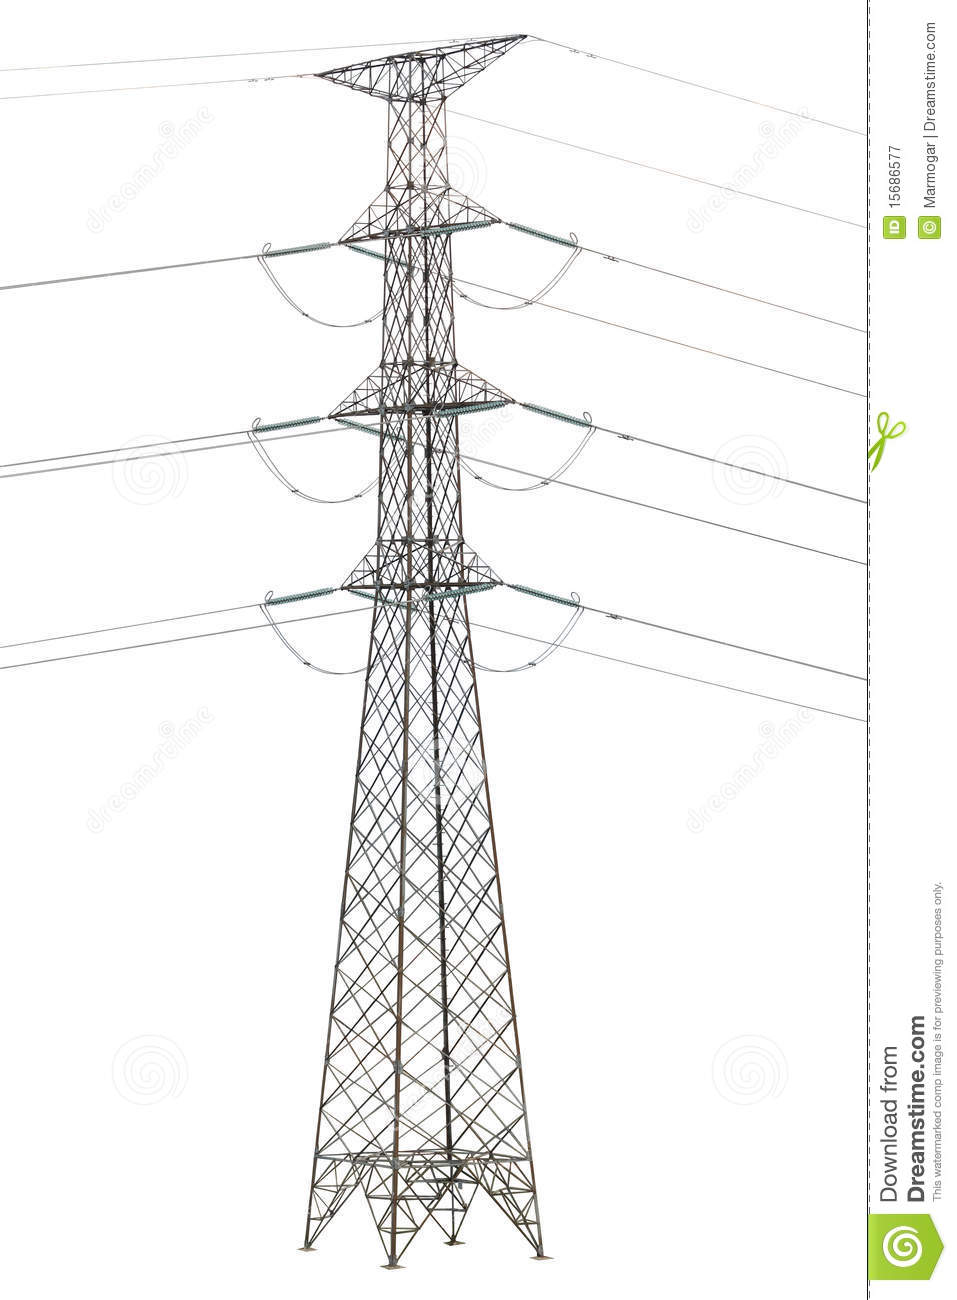 Royalty Free Stock Photography Electric Tower Isolated Image15686577 on electrical wire 3